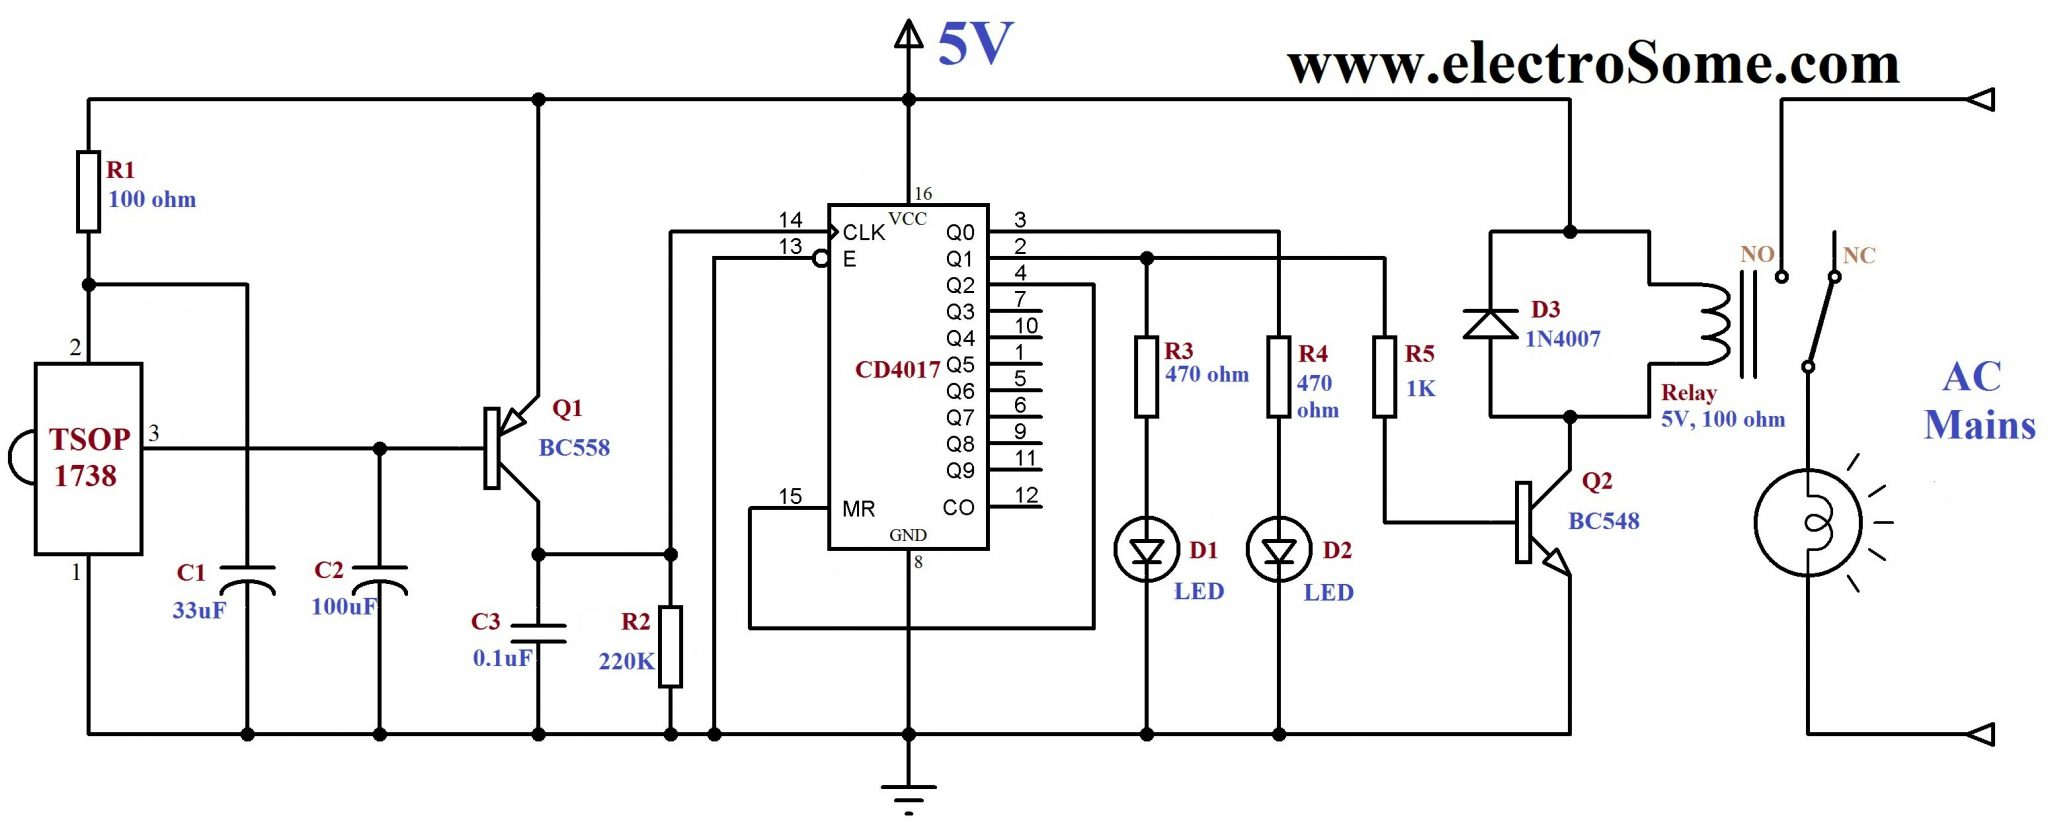 infrared remote control for home appliances rh electrosome com remote control circuit diagram pdf wireless remote control circuit diagram